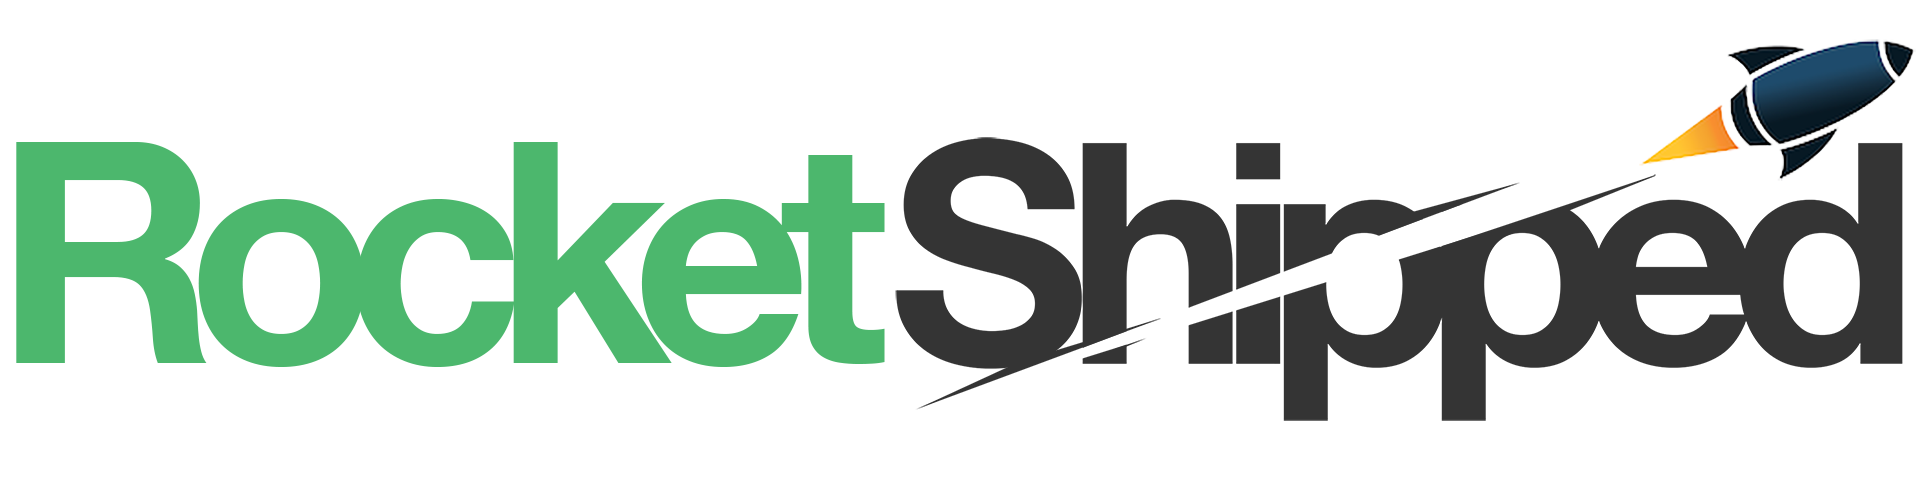 RocketShipped | Complete eCommerce Shipping and Fulfillment Services